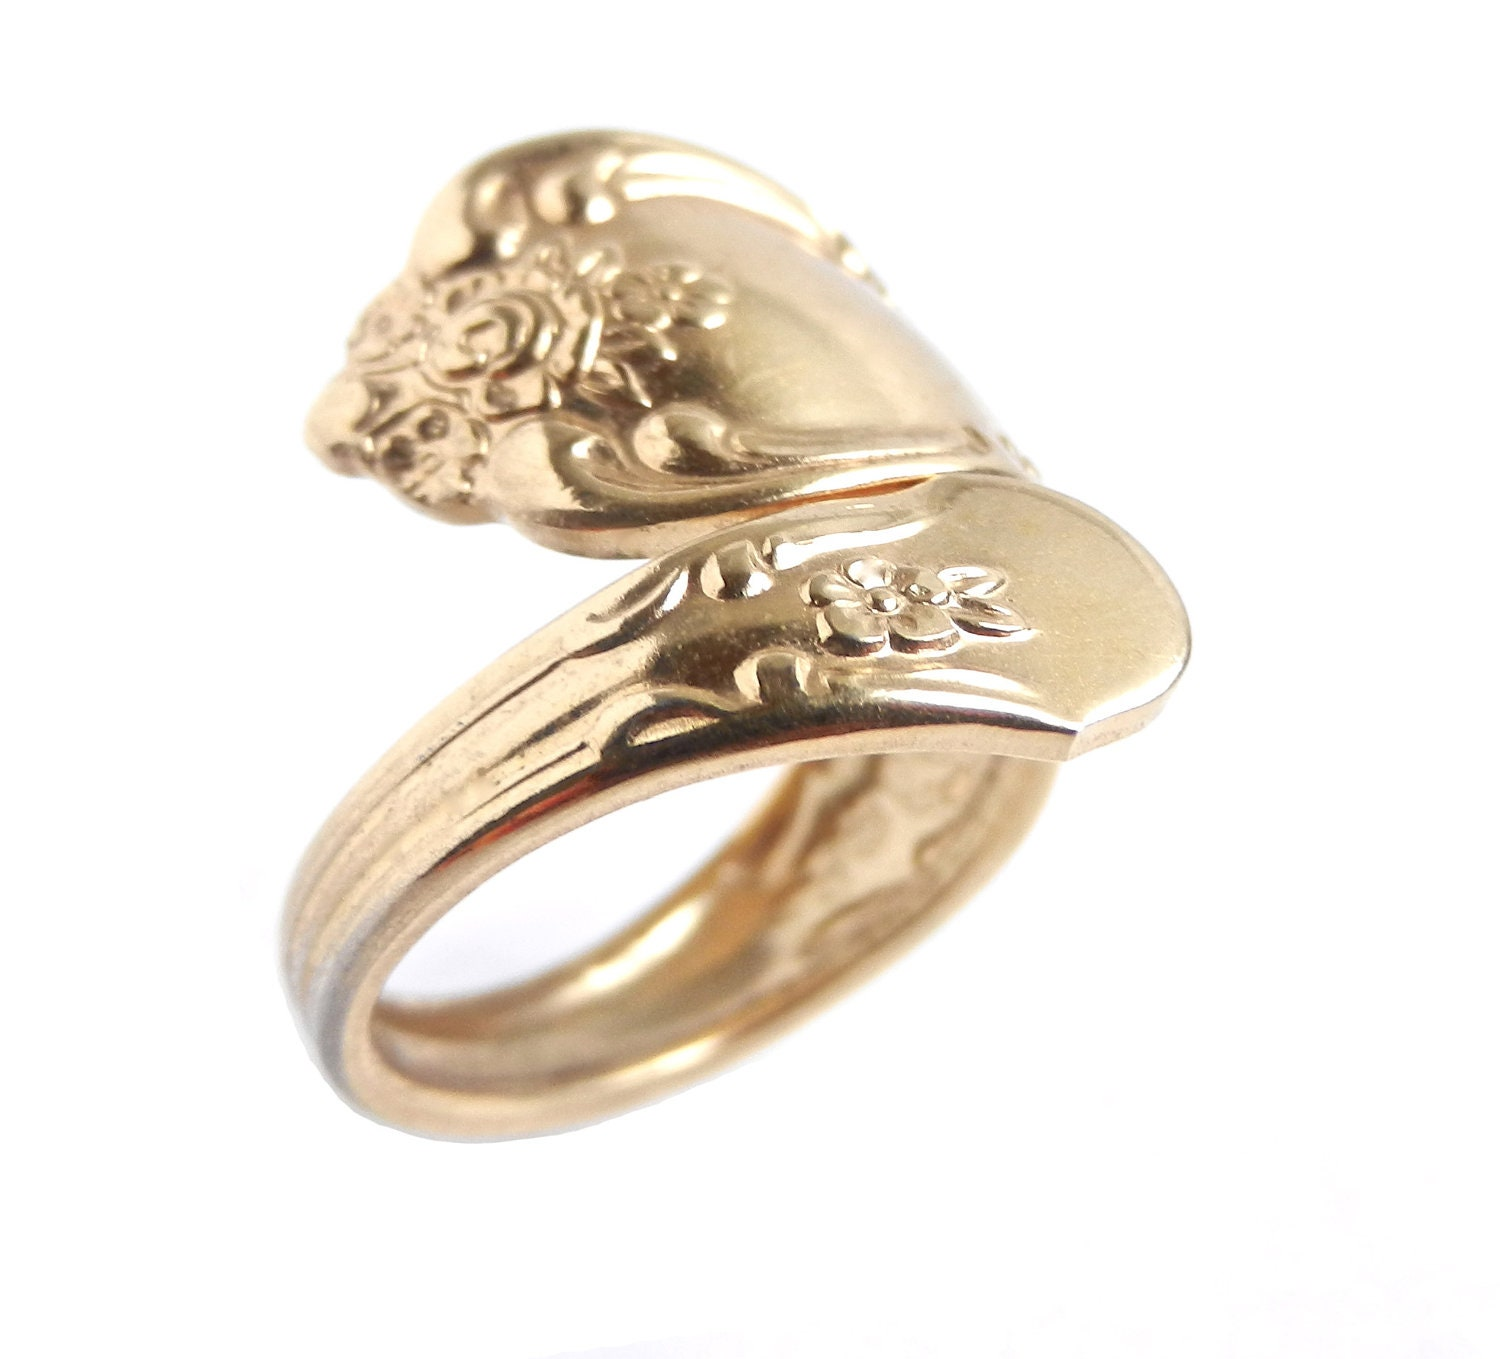 vintage gold tone spoon ring wma rogers oneida by